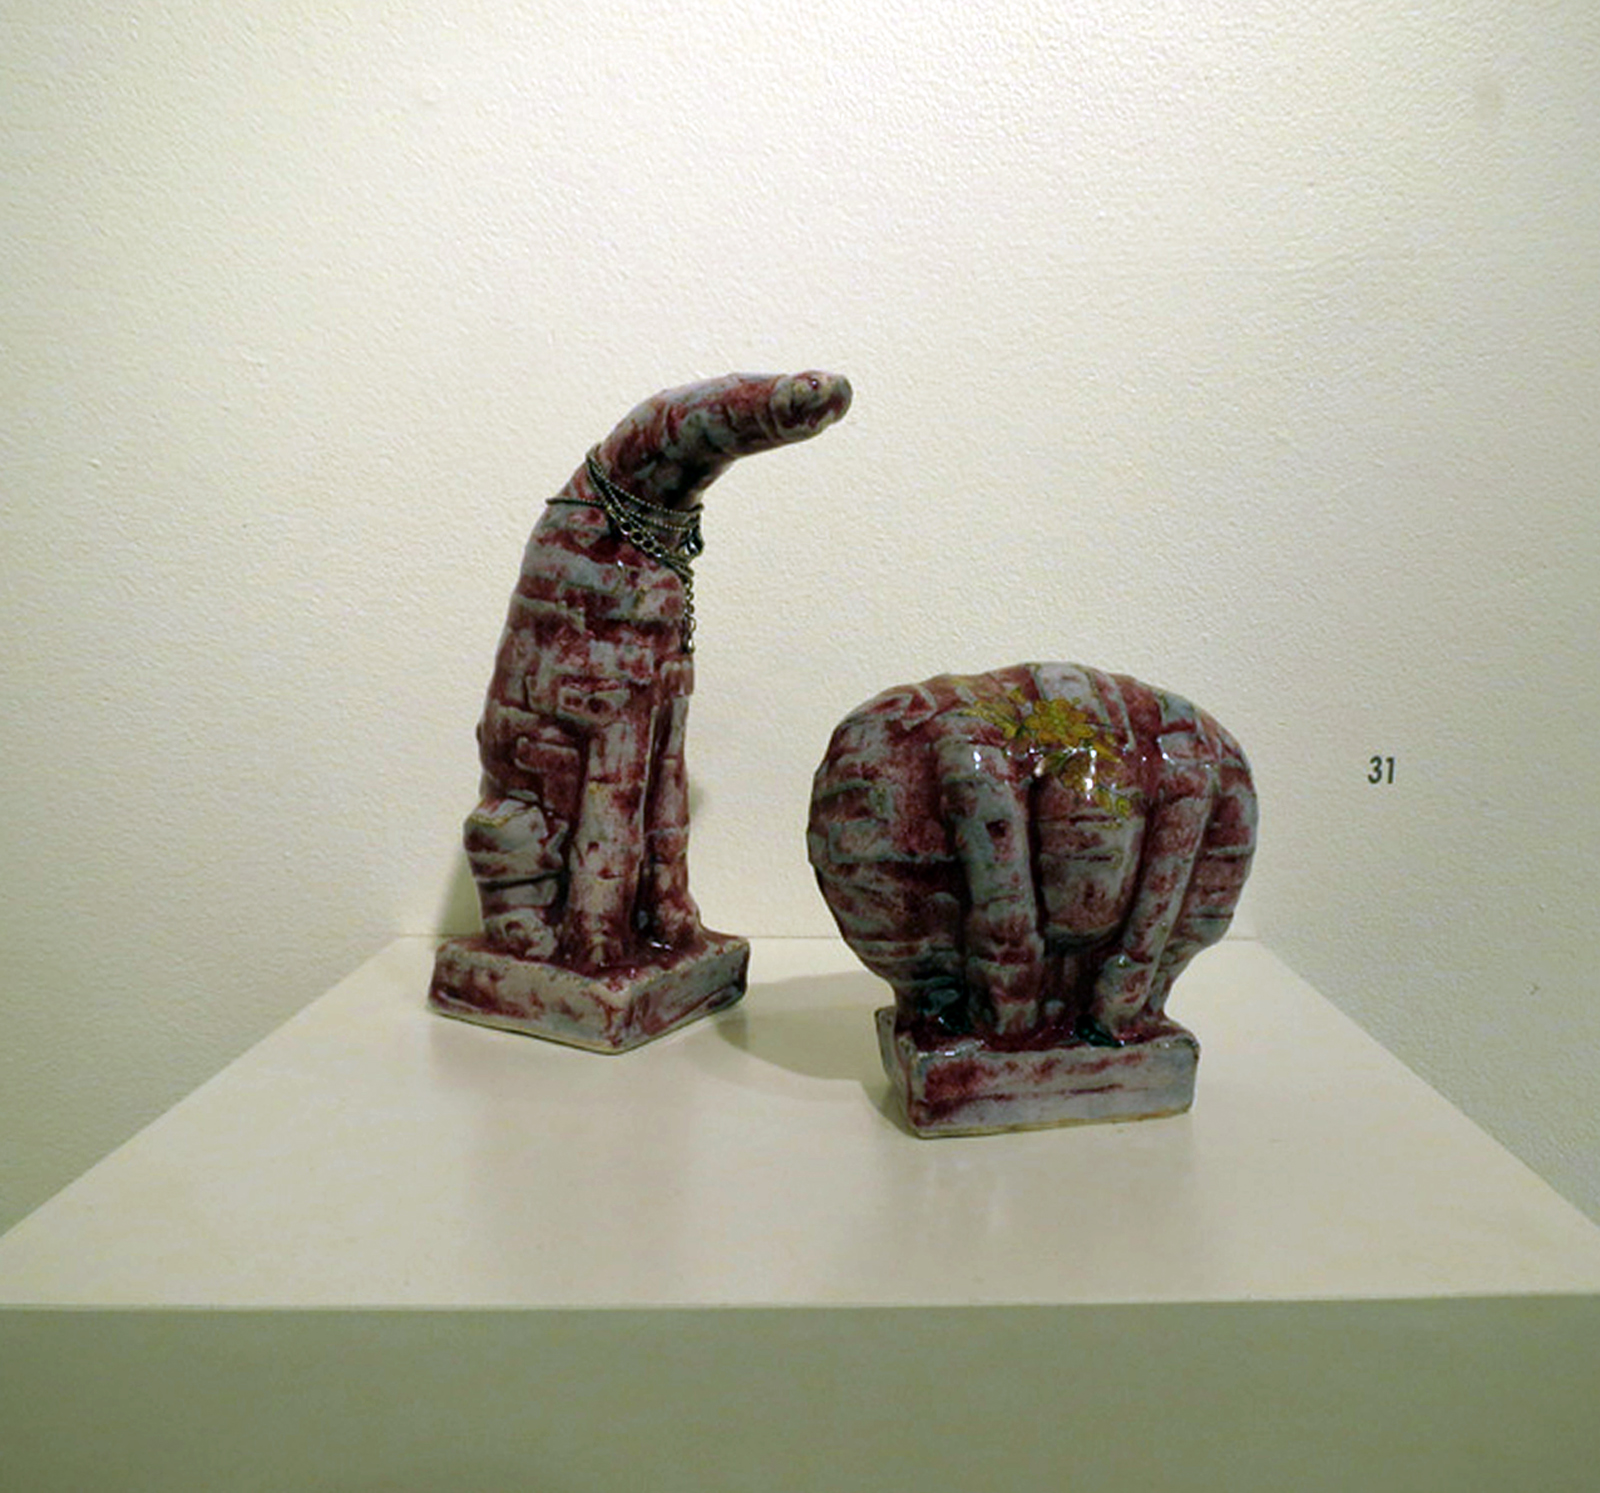 31.  Odd Couple , Susan Flavell, glazed press moulded stoneware, found chain, $550 pair